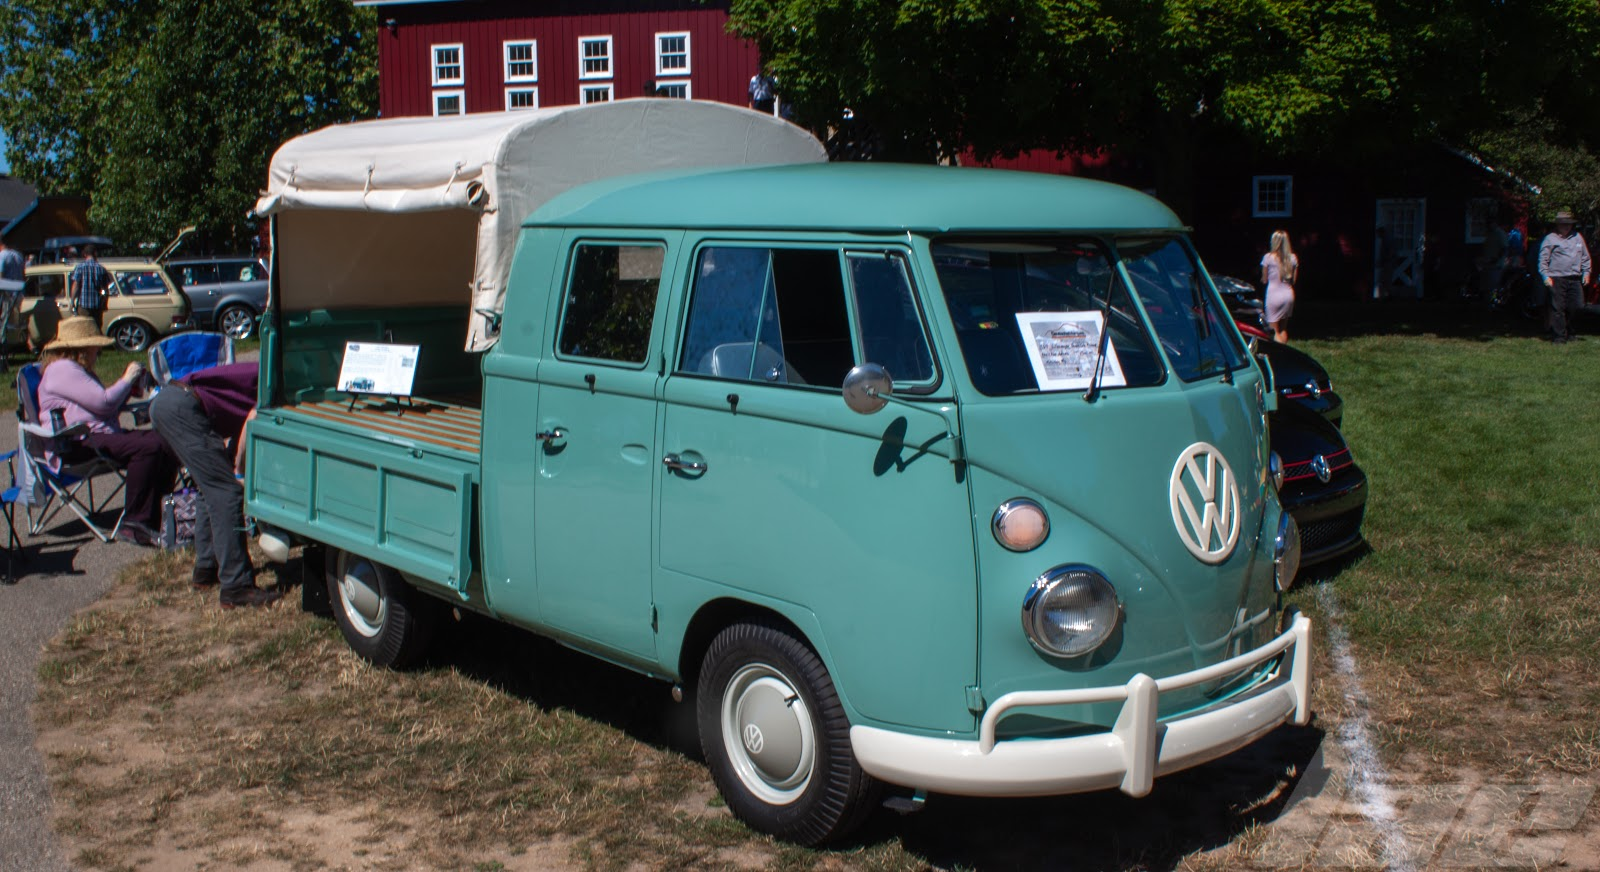 This Vw 4 Door Cab Pickup Is A Pretty Rare Vehicle Rear Engine Truck